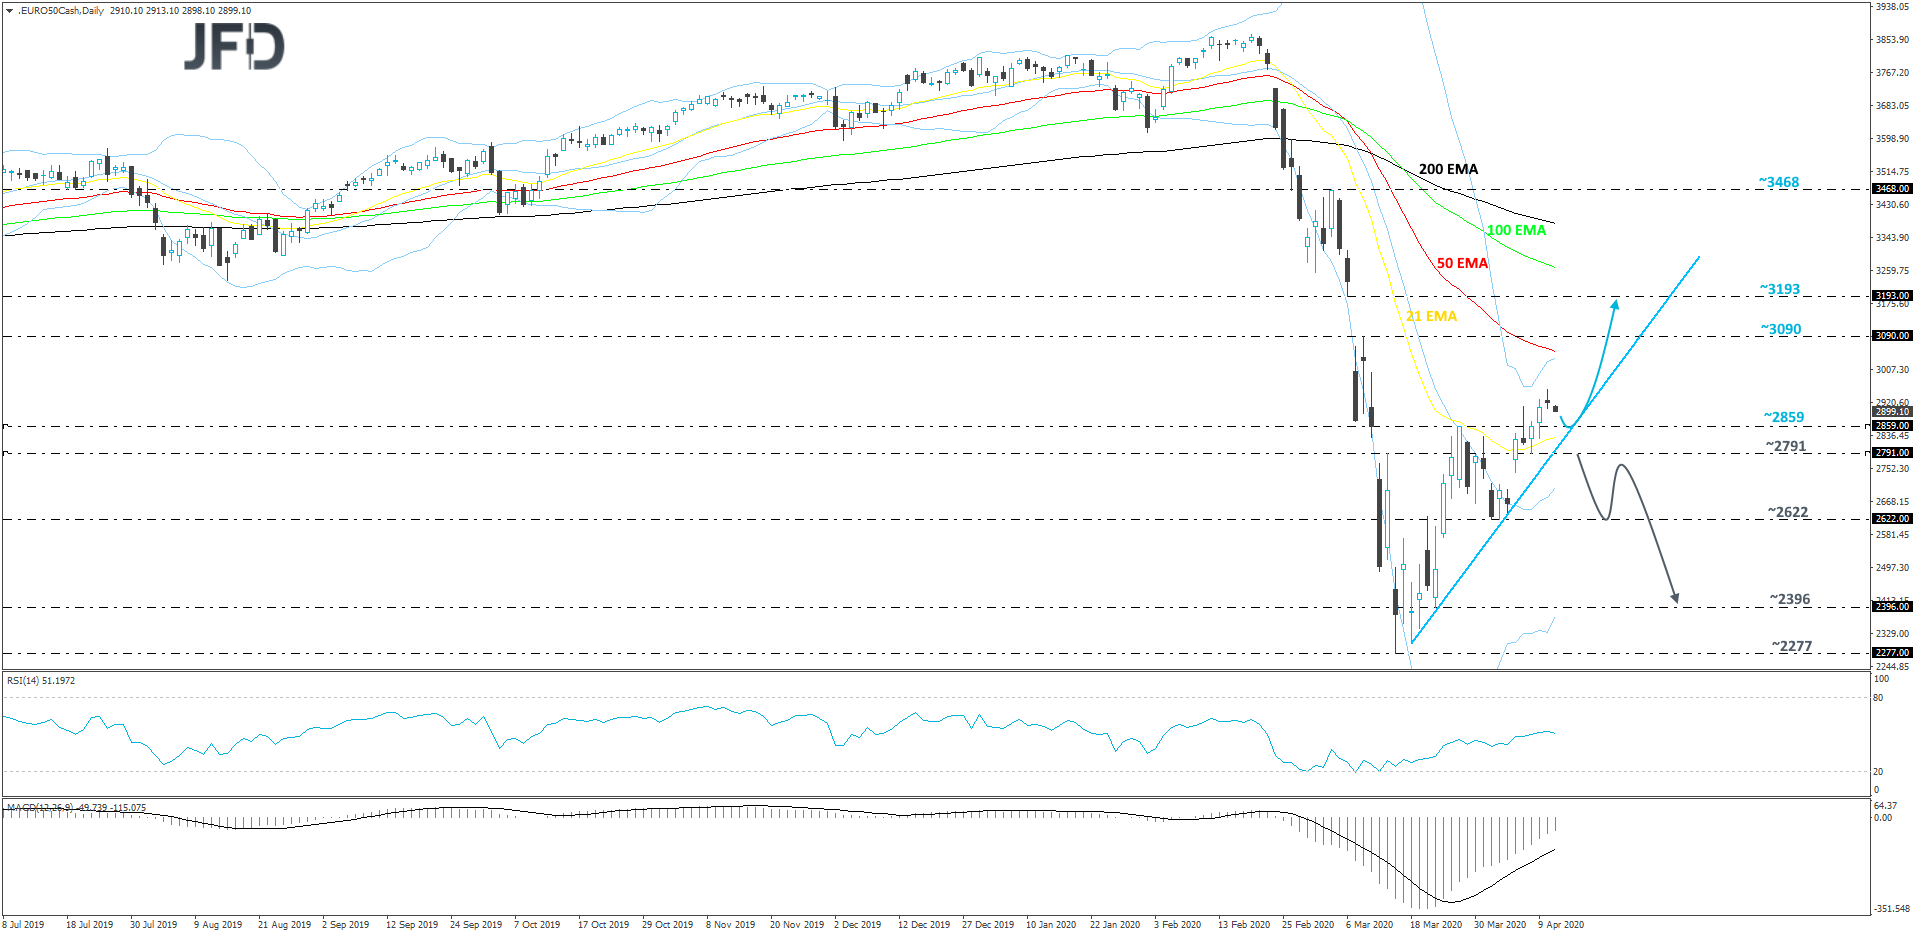 Euro Stoxx 50 cash index daily chart technical analysis